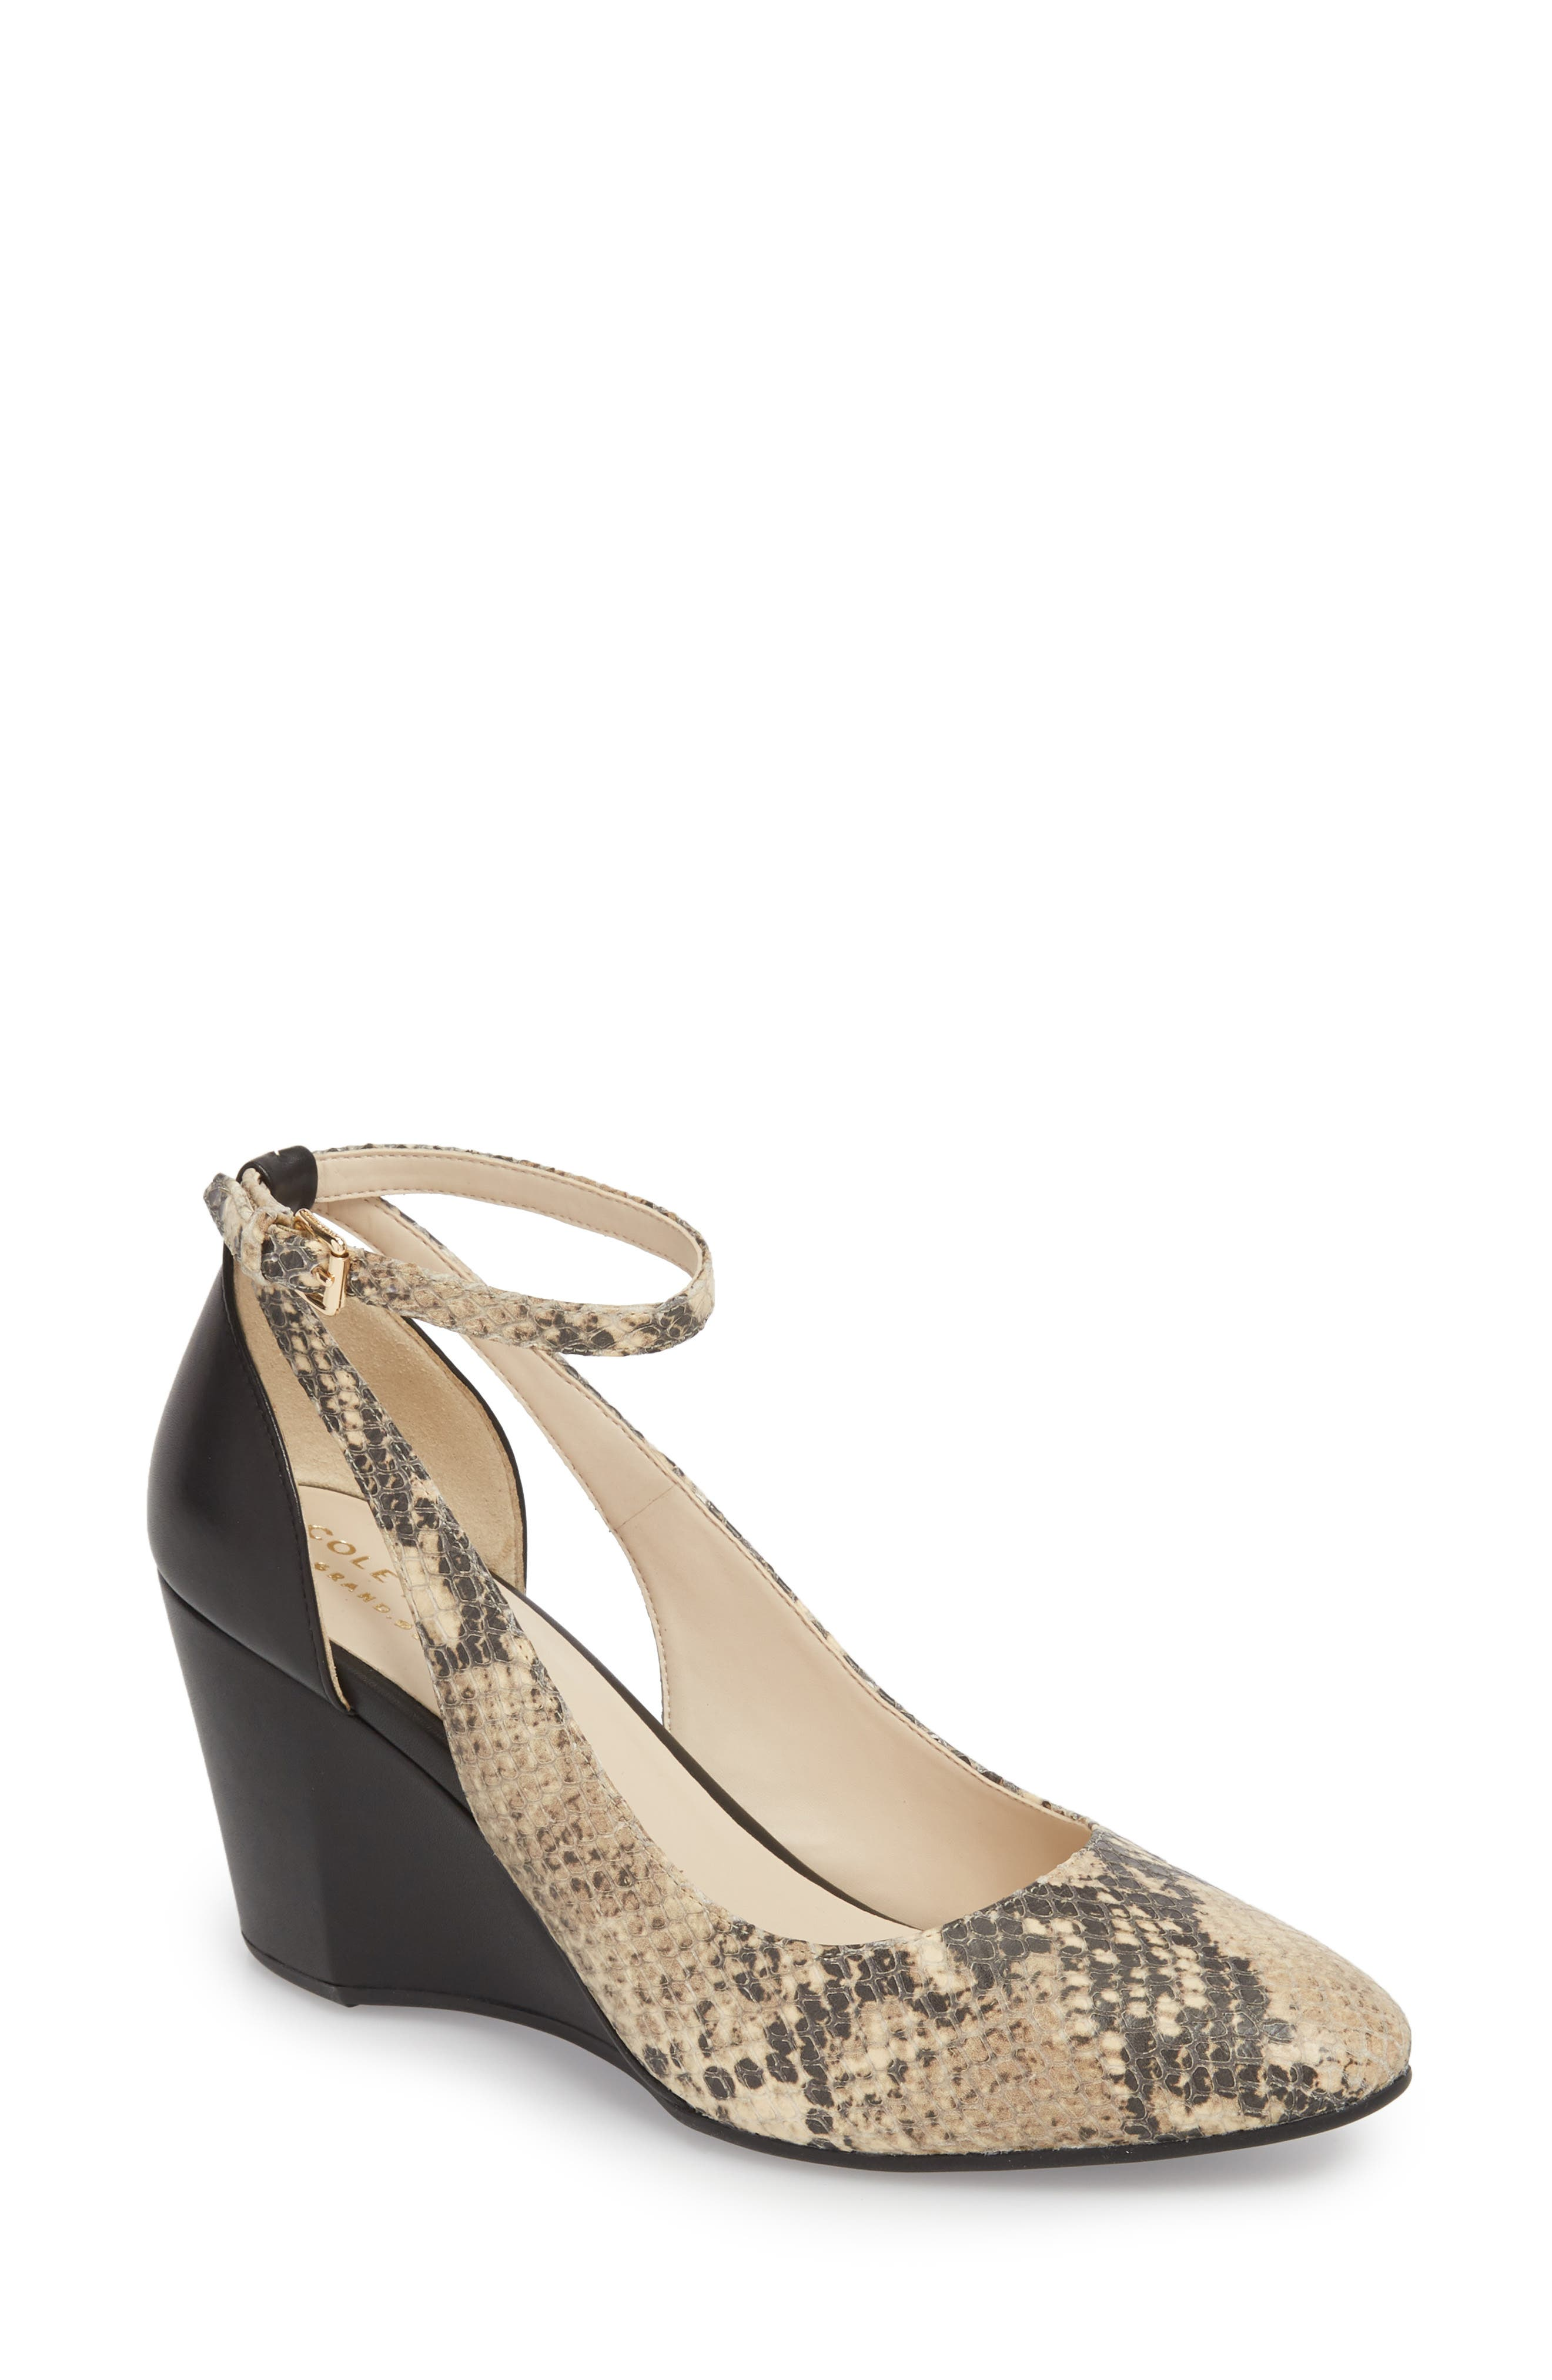 Lacey Cutout Wedge Pump, Main, color, SNAKE PRINT LEATHER